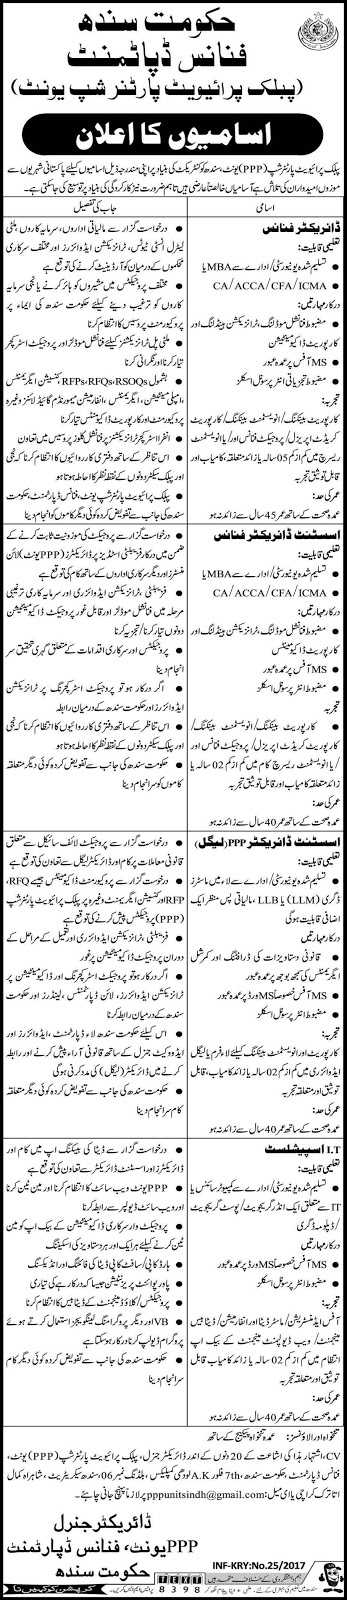 Finance Department Sindh Government Jobs 2017